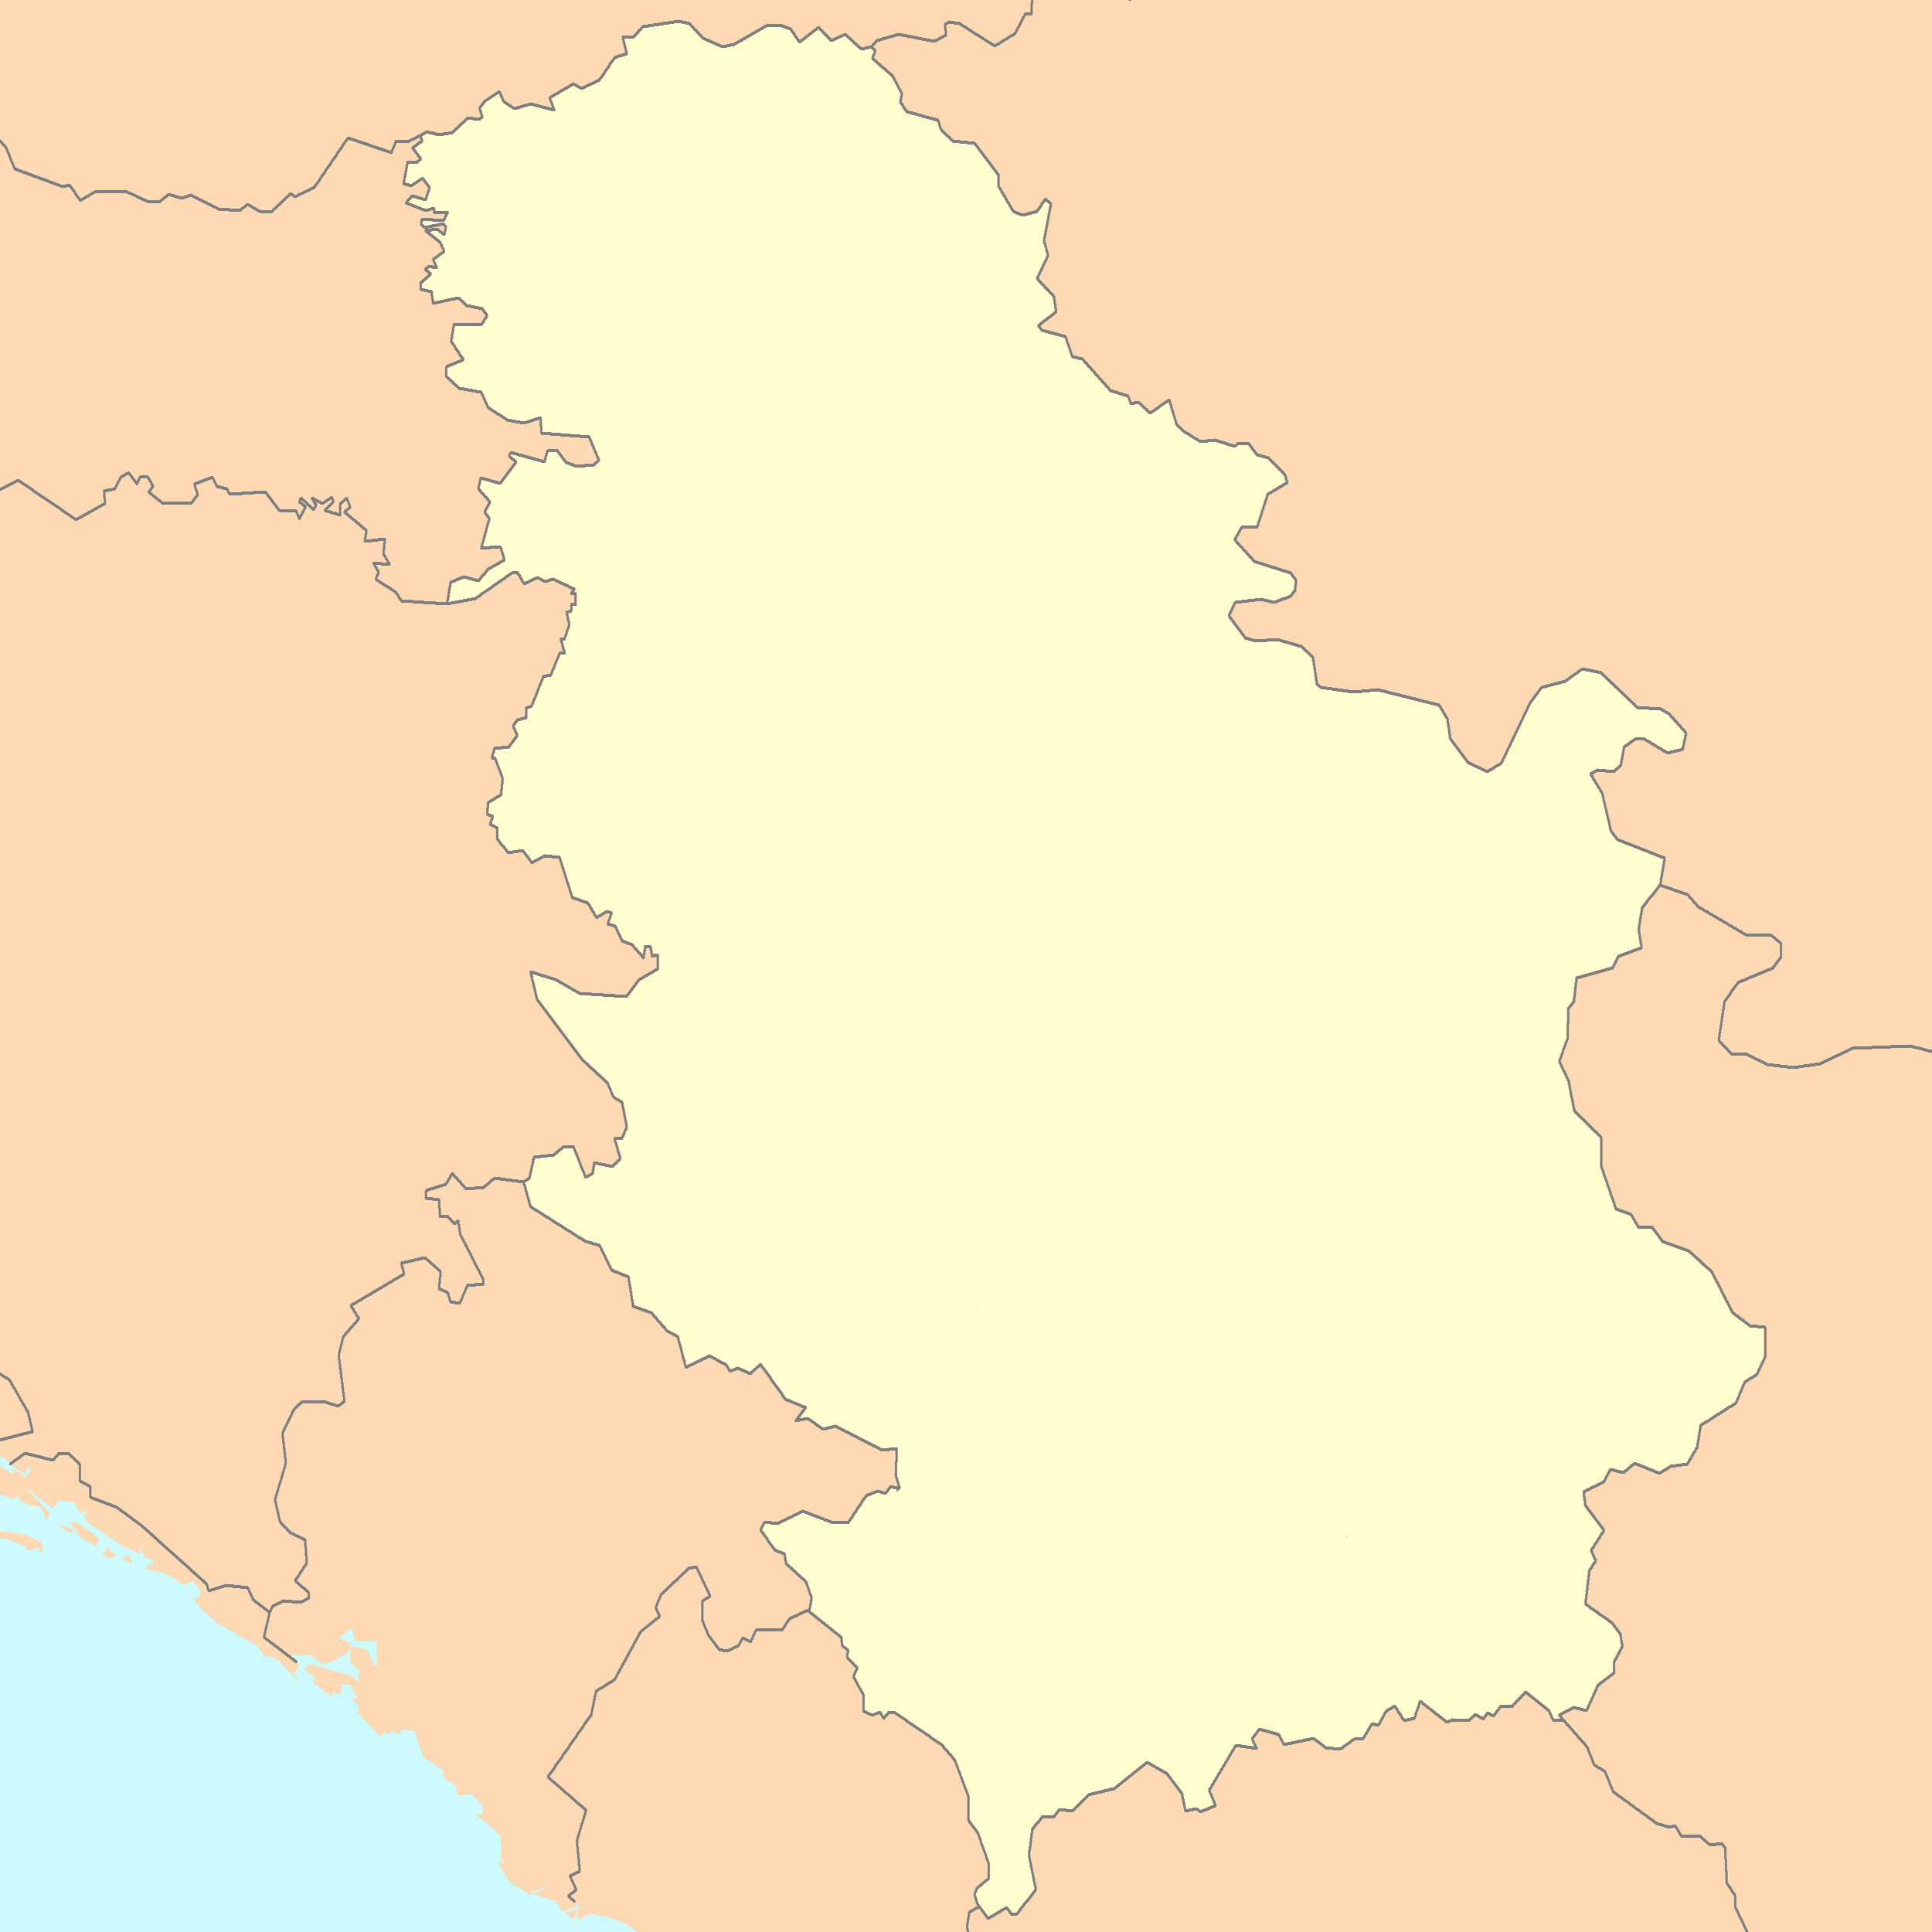 Where Is Serbia Serbia Maps Mapsofnet - Map of serbia